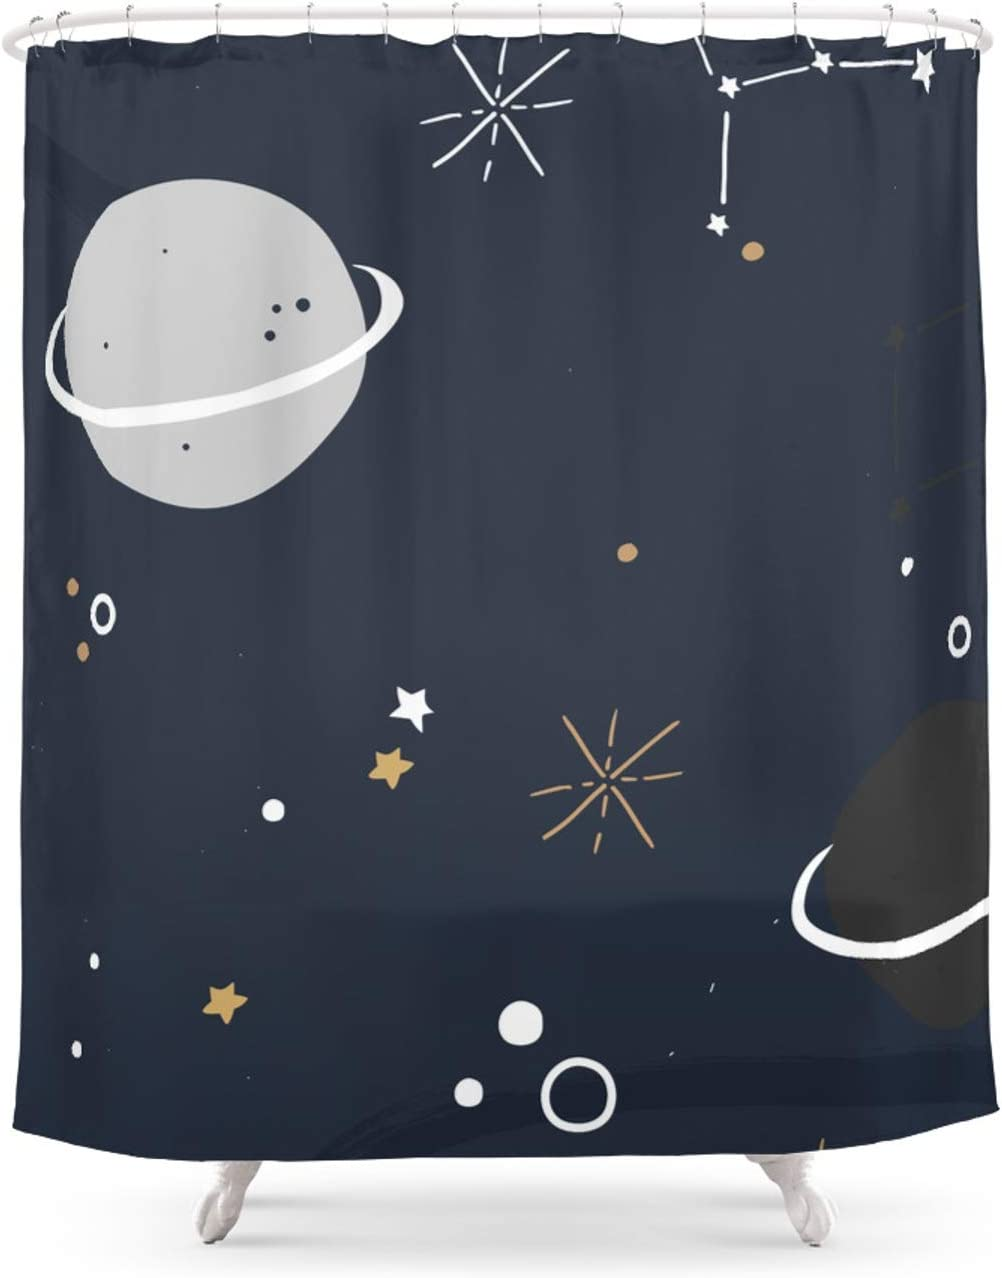 Cheap mail order OFFicial mail order sales Outer Space by The Native State on Curtain Shower x 74